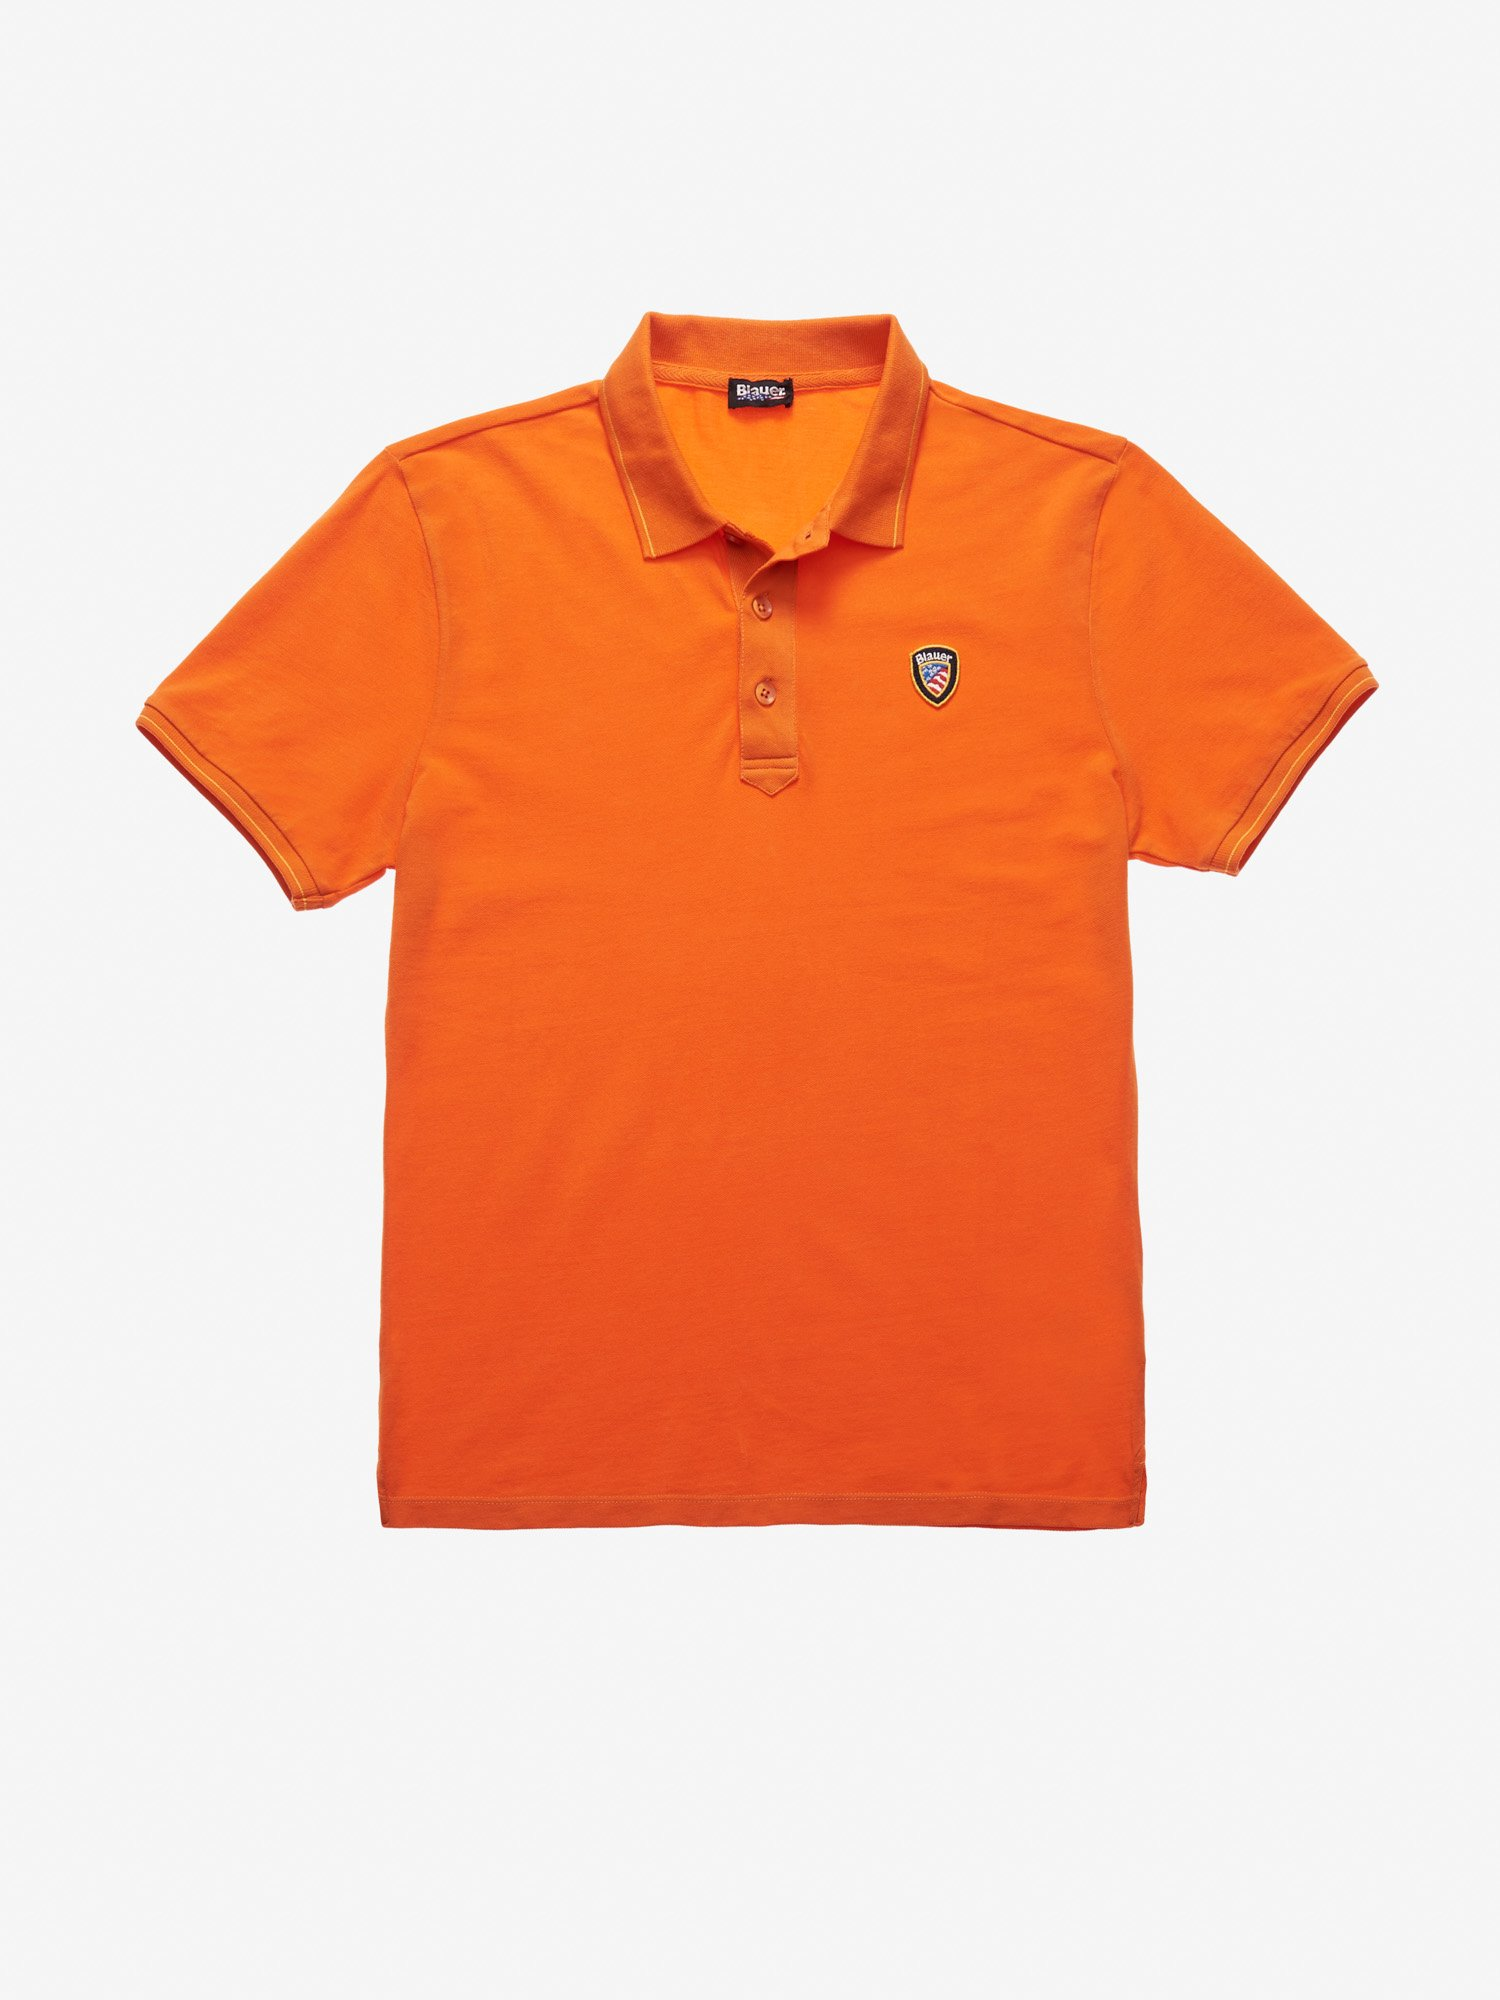 Blauer - LEICHTES PIQUE-POLOSHIRT - Orange Carrot - Blauer